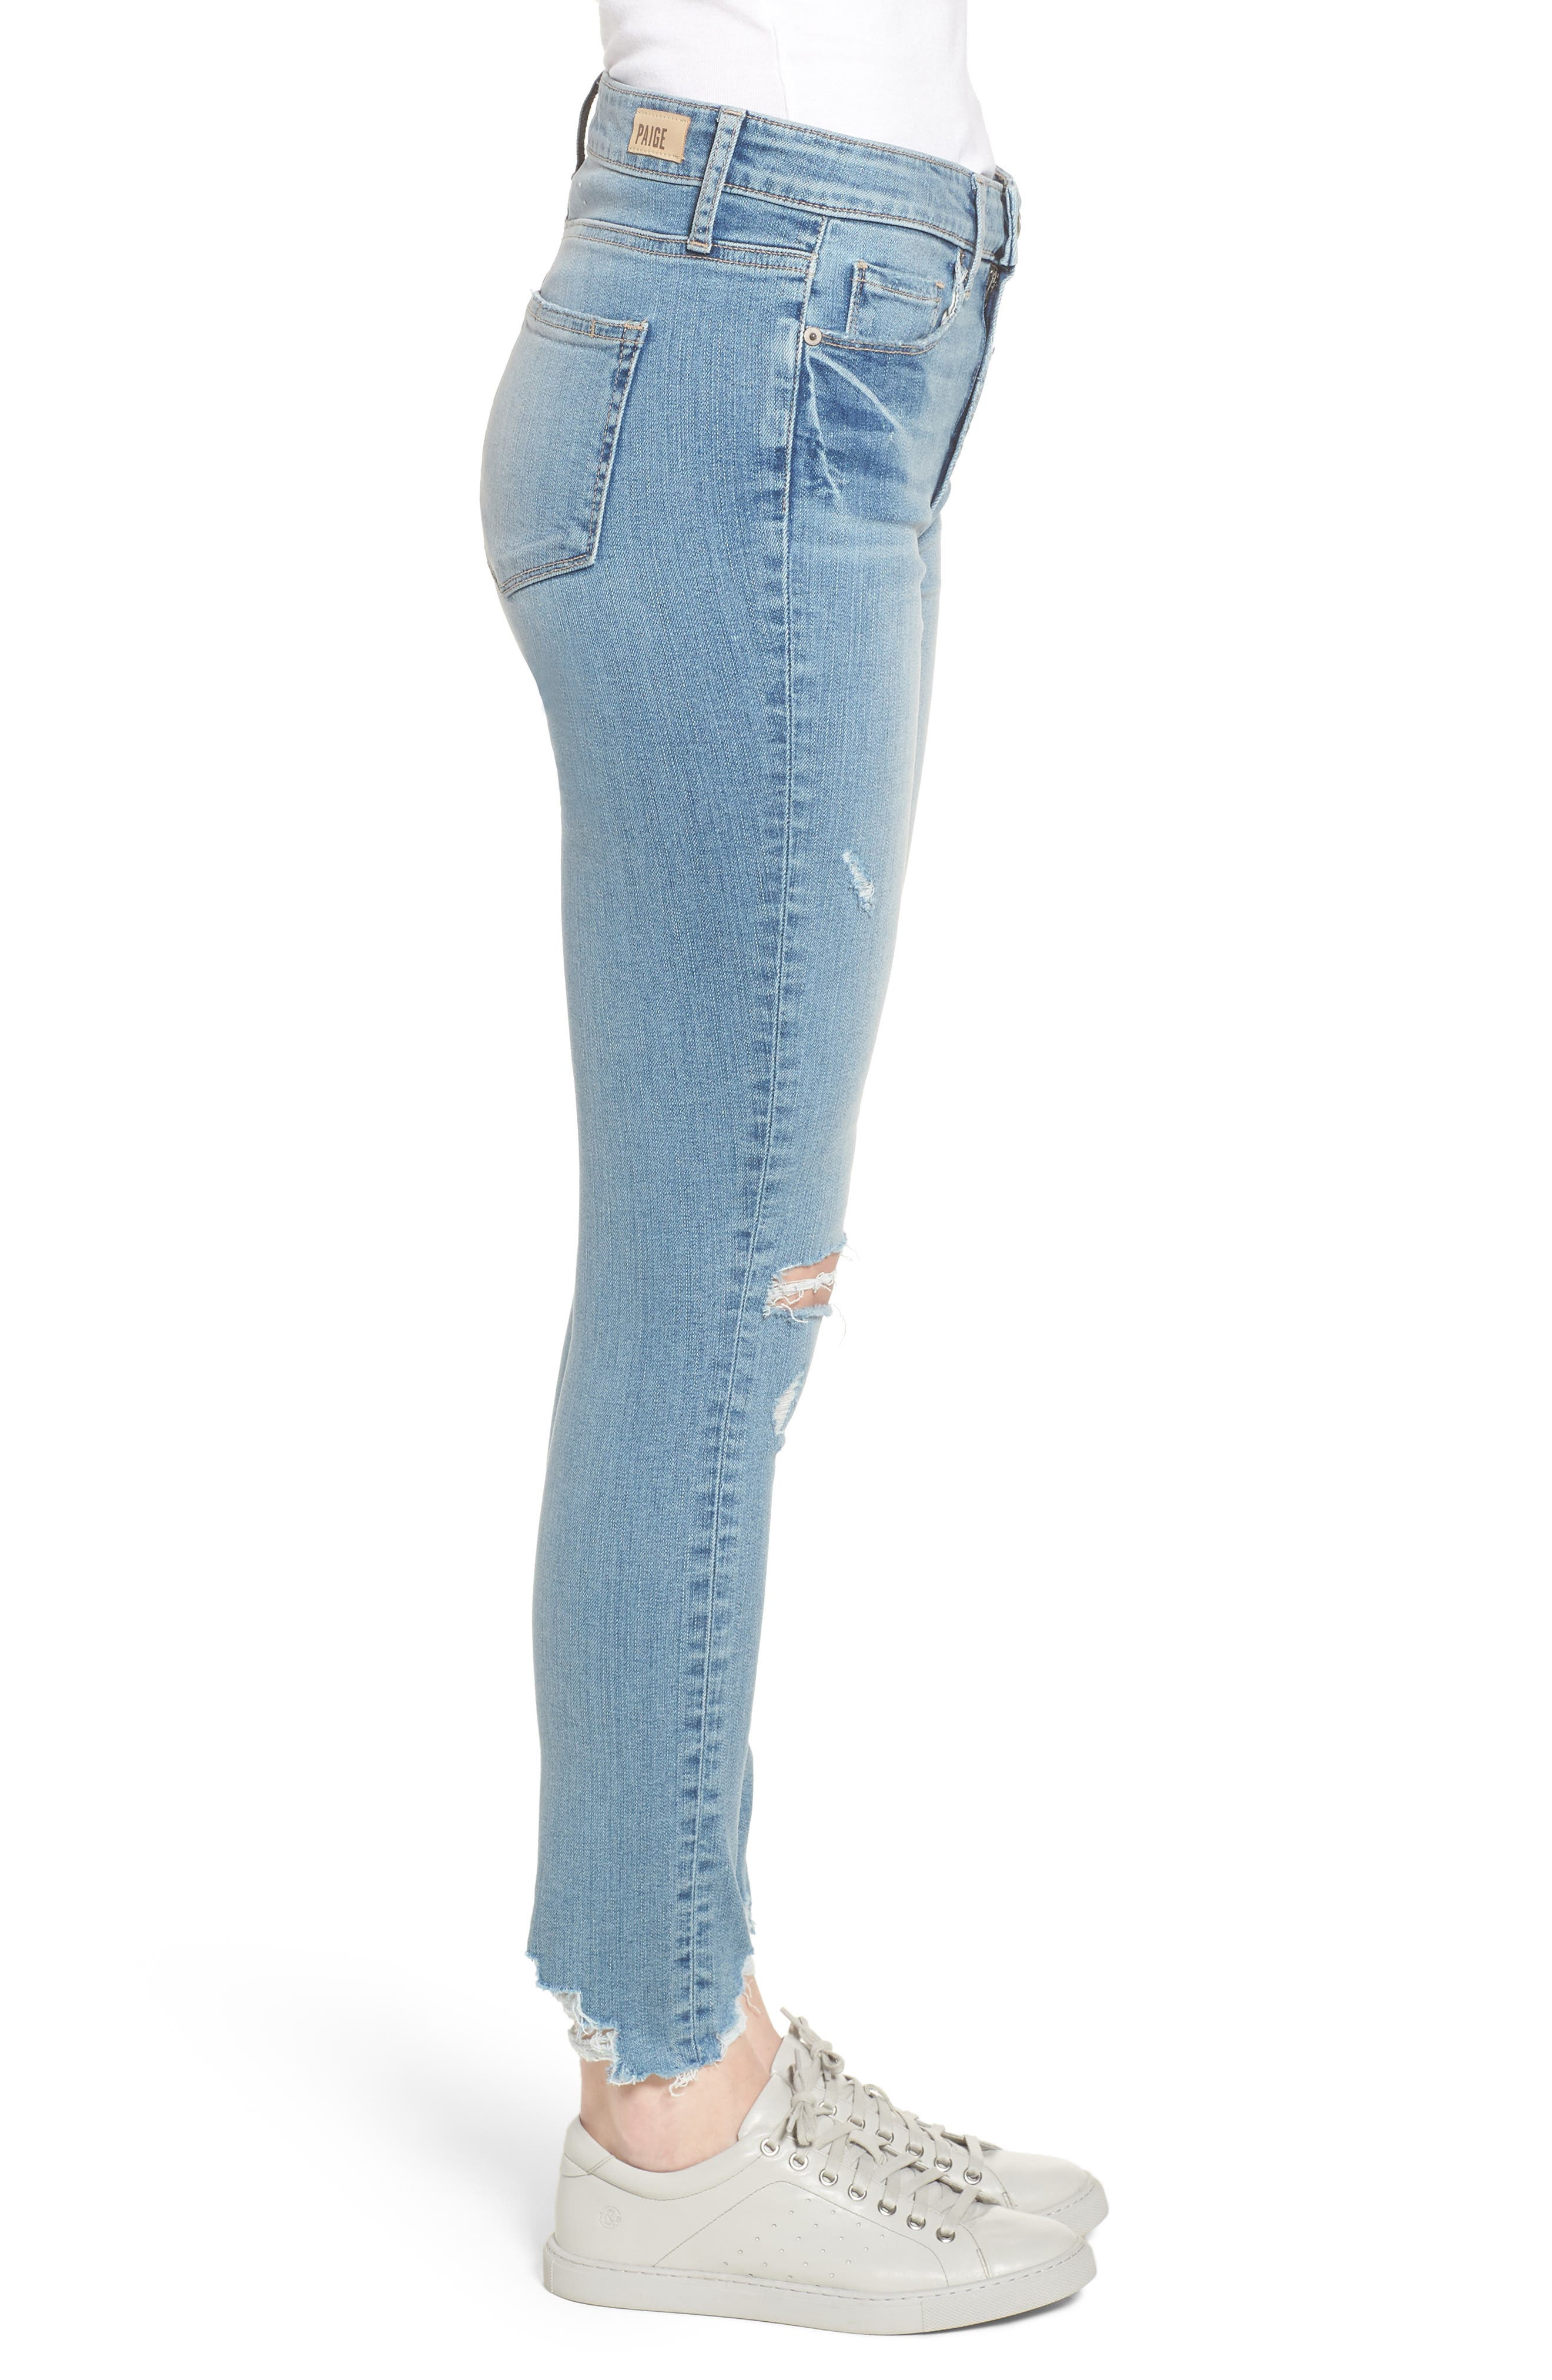 Hoxton High Waist Ankle Skinny Jeans,                             Alternate thumbnail 3, color,                             Janis Destructed